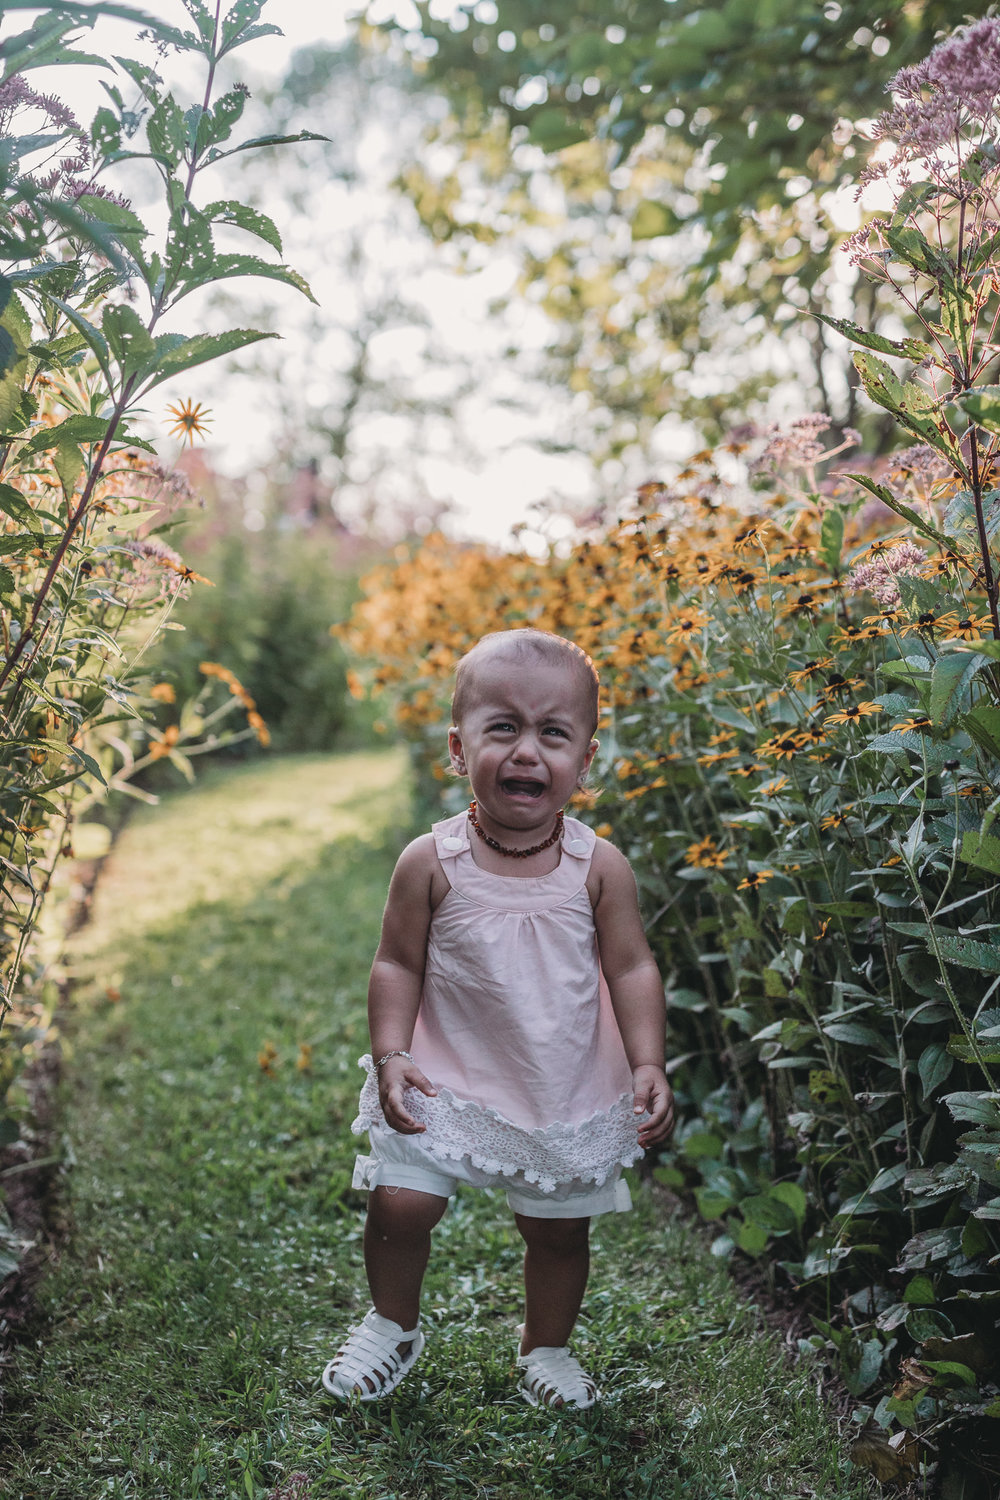 baby crying in flowers